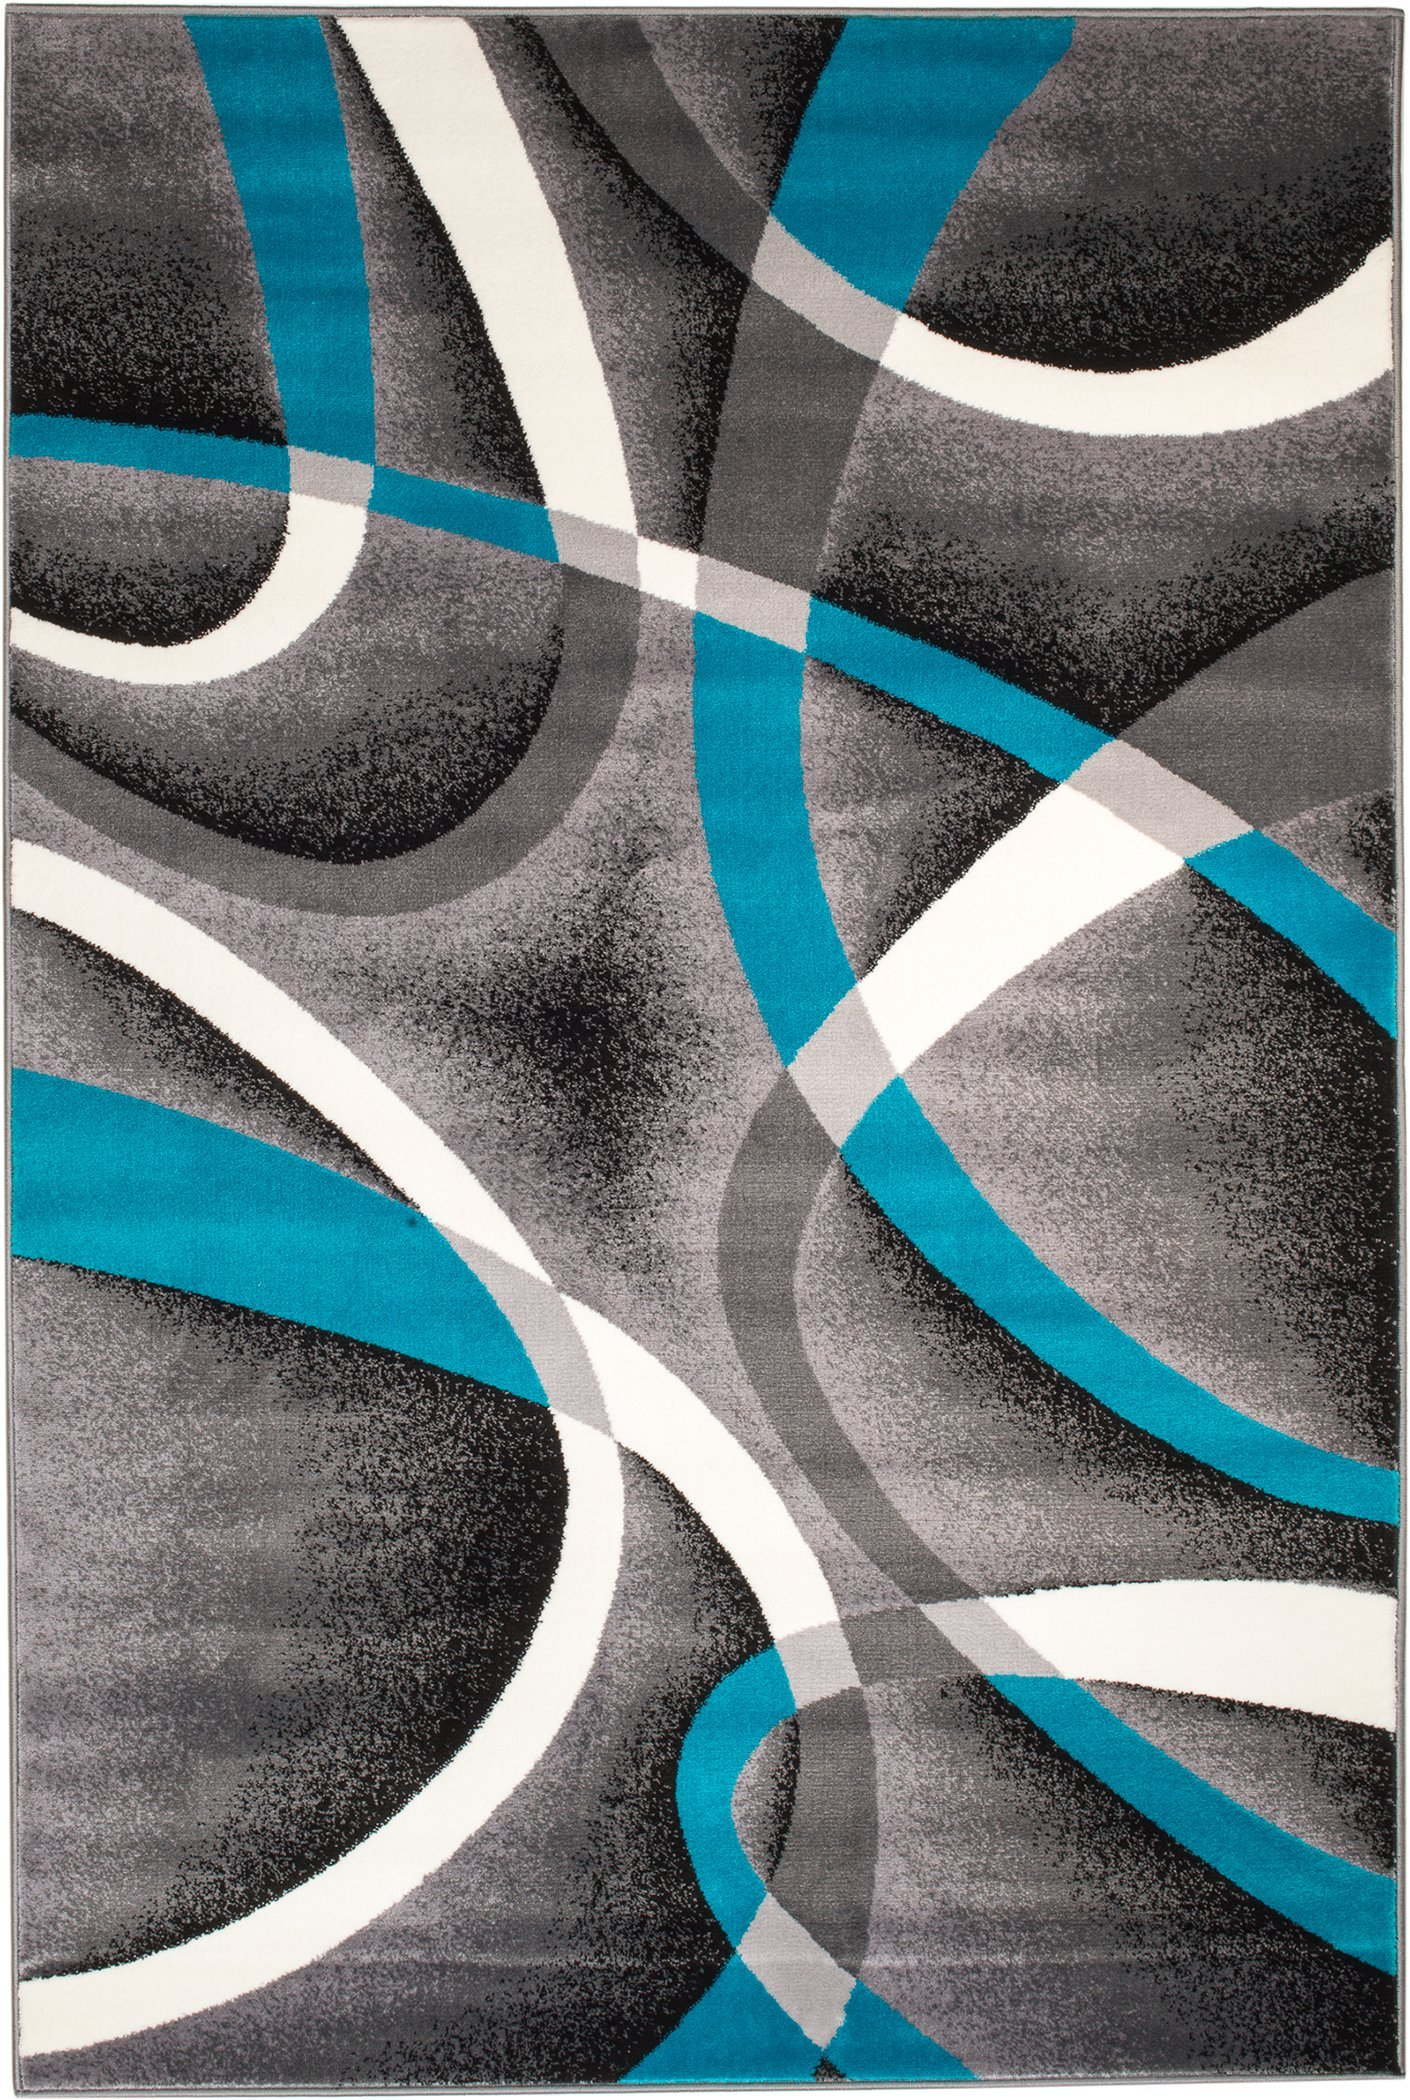 Summit SW-Q0ZA-GB7F 035 Turquoise Grey Area Rug Modern Abstract Many Sizes Available , DOOR MAT 22 inch x 35 inch